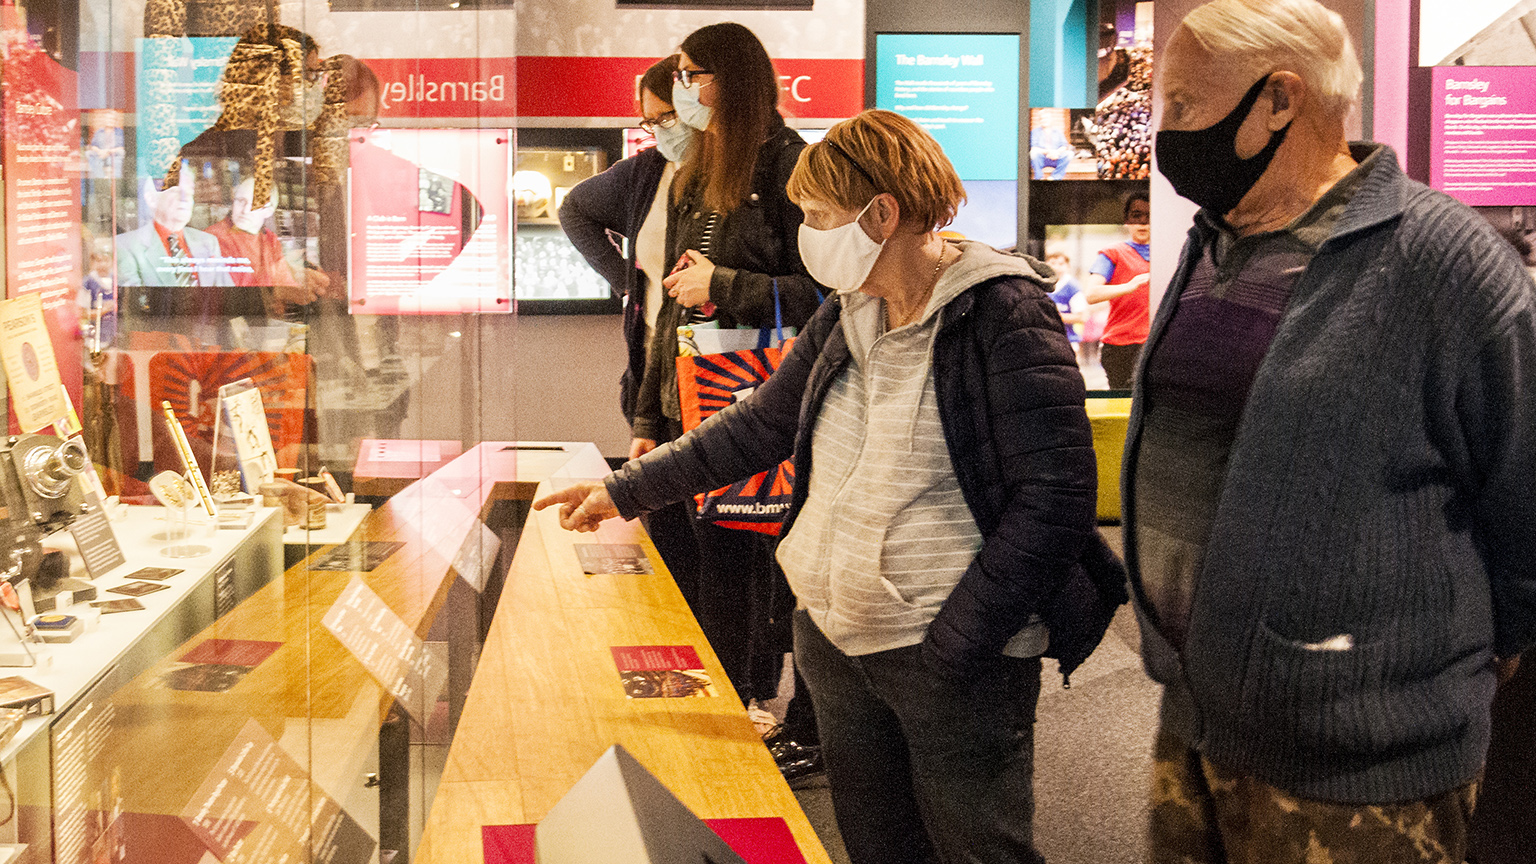 Visitors enjoy Experience Barnsley, one of the five finalists for Art Fund Museum of the Year 2021